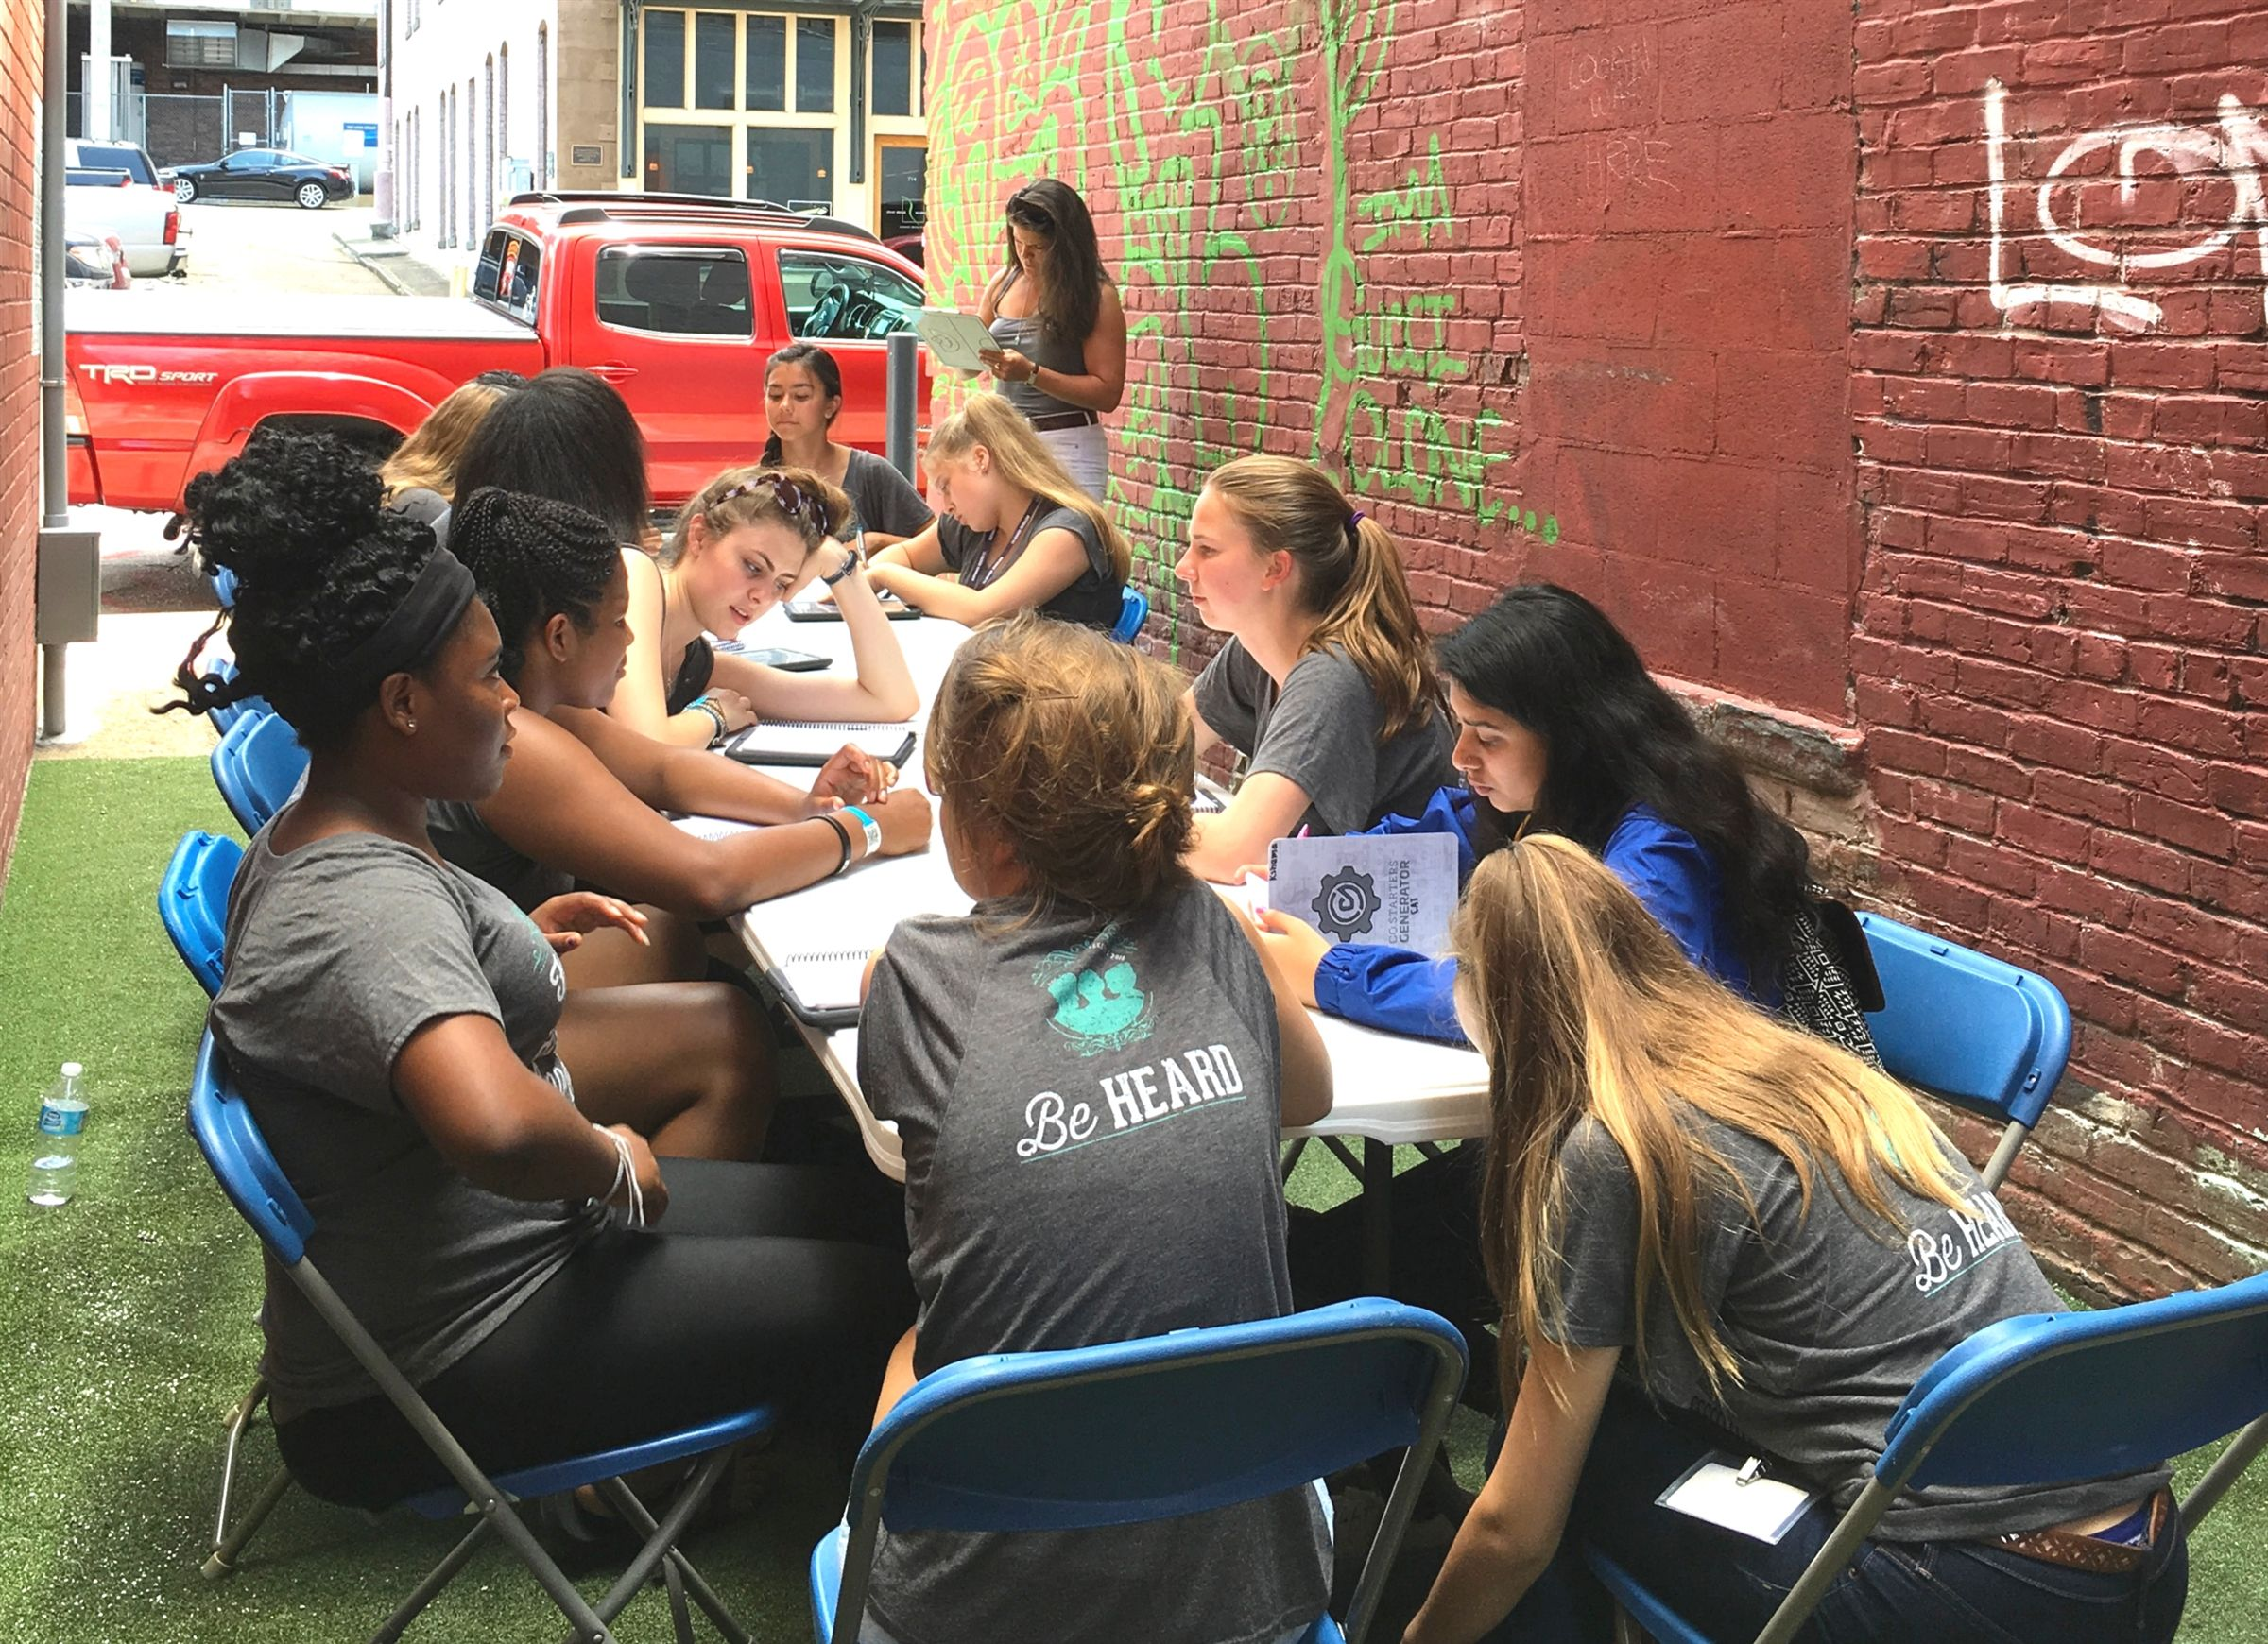 Girls working on project in designed alleyway in Chattanooga